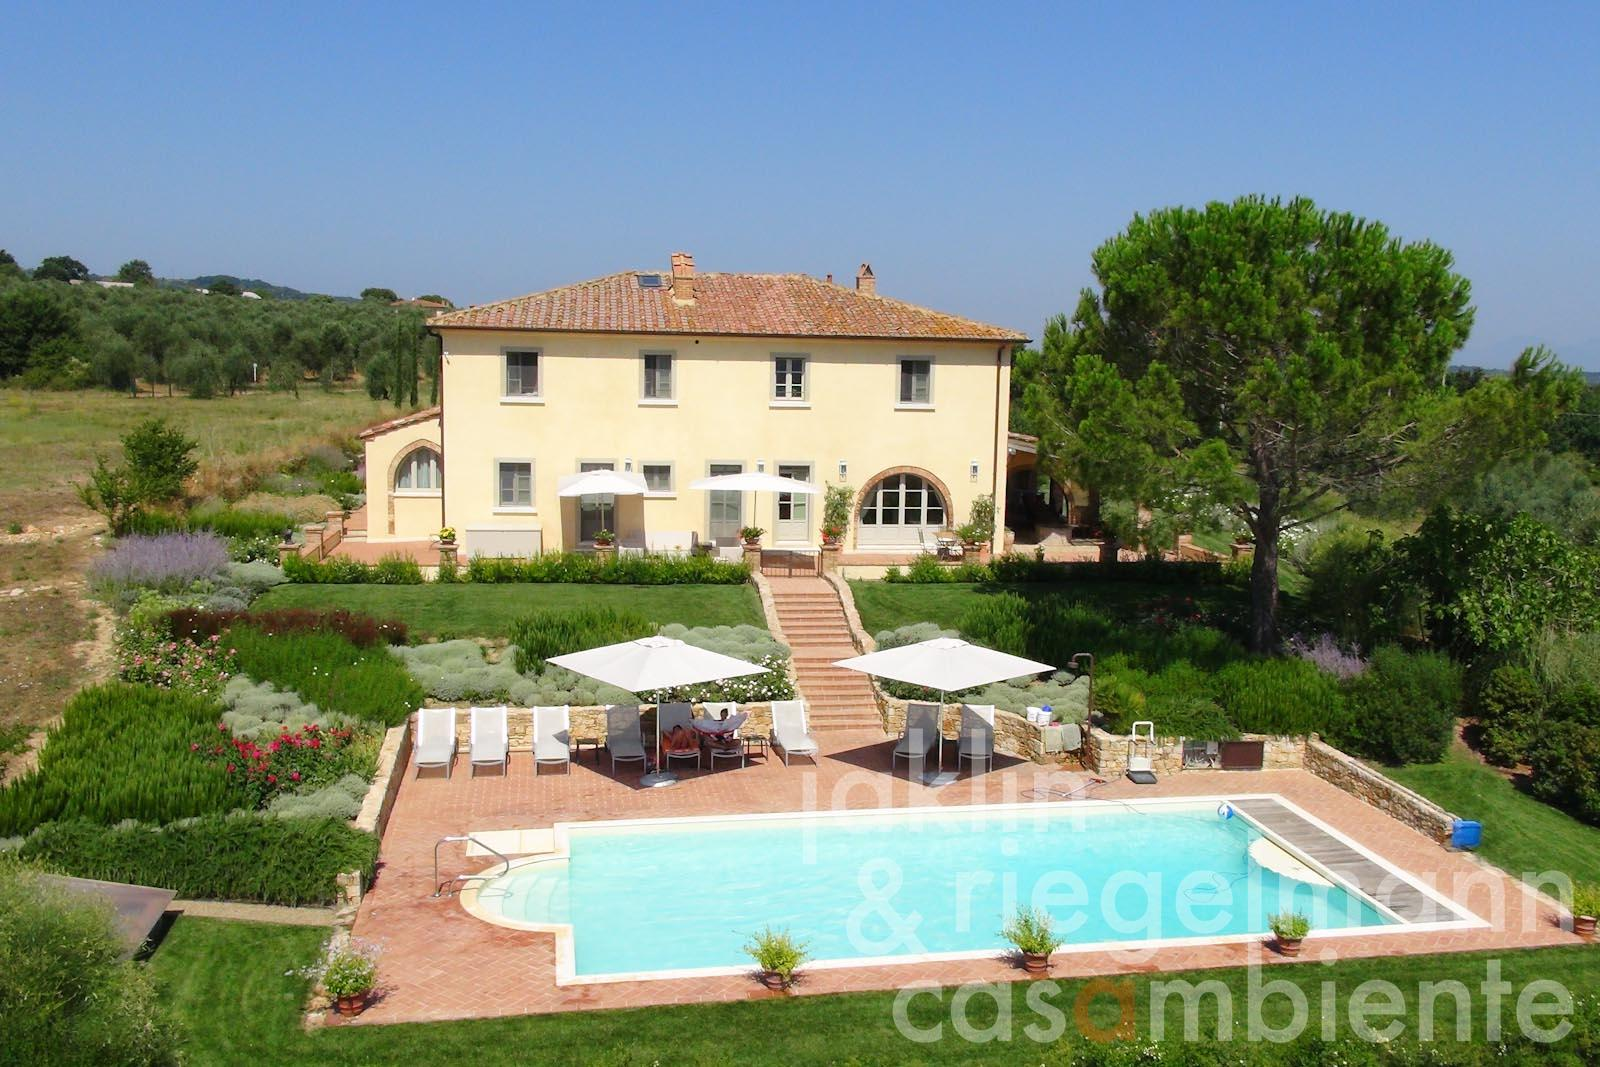 The elaborately restored Tuscan villa for sale with garden and swimming pool close to Pisa